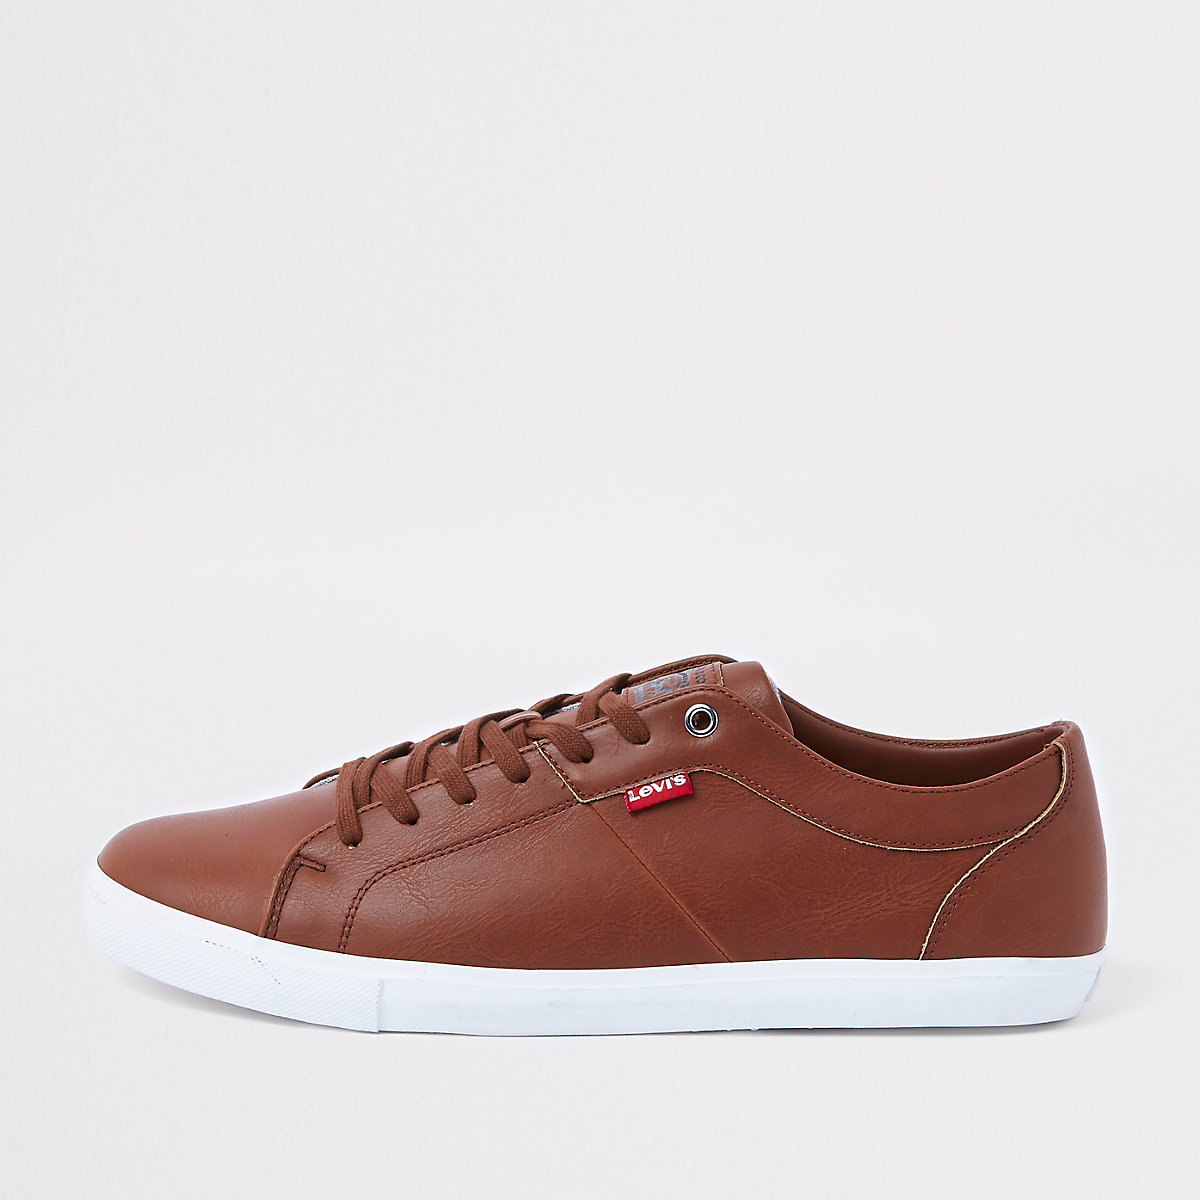 Levi's brown leather lace-up trainers